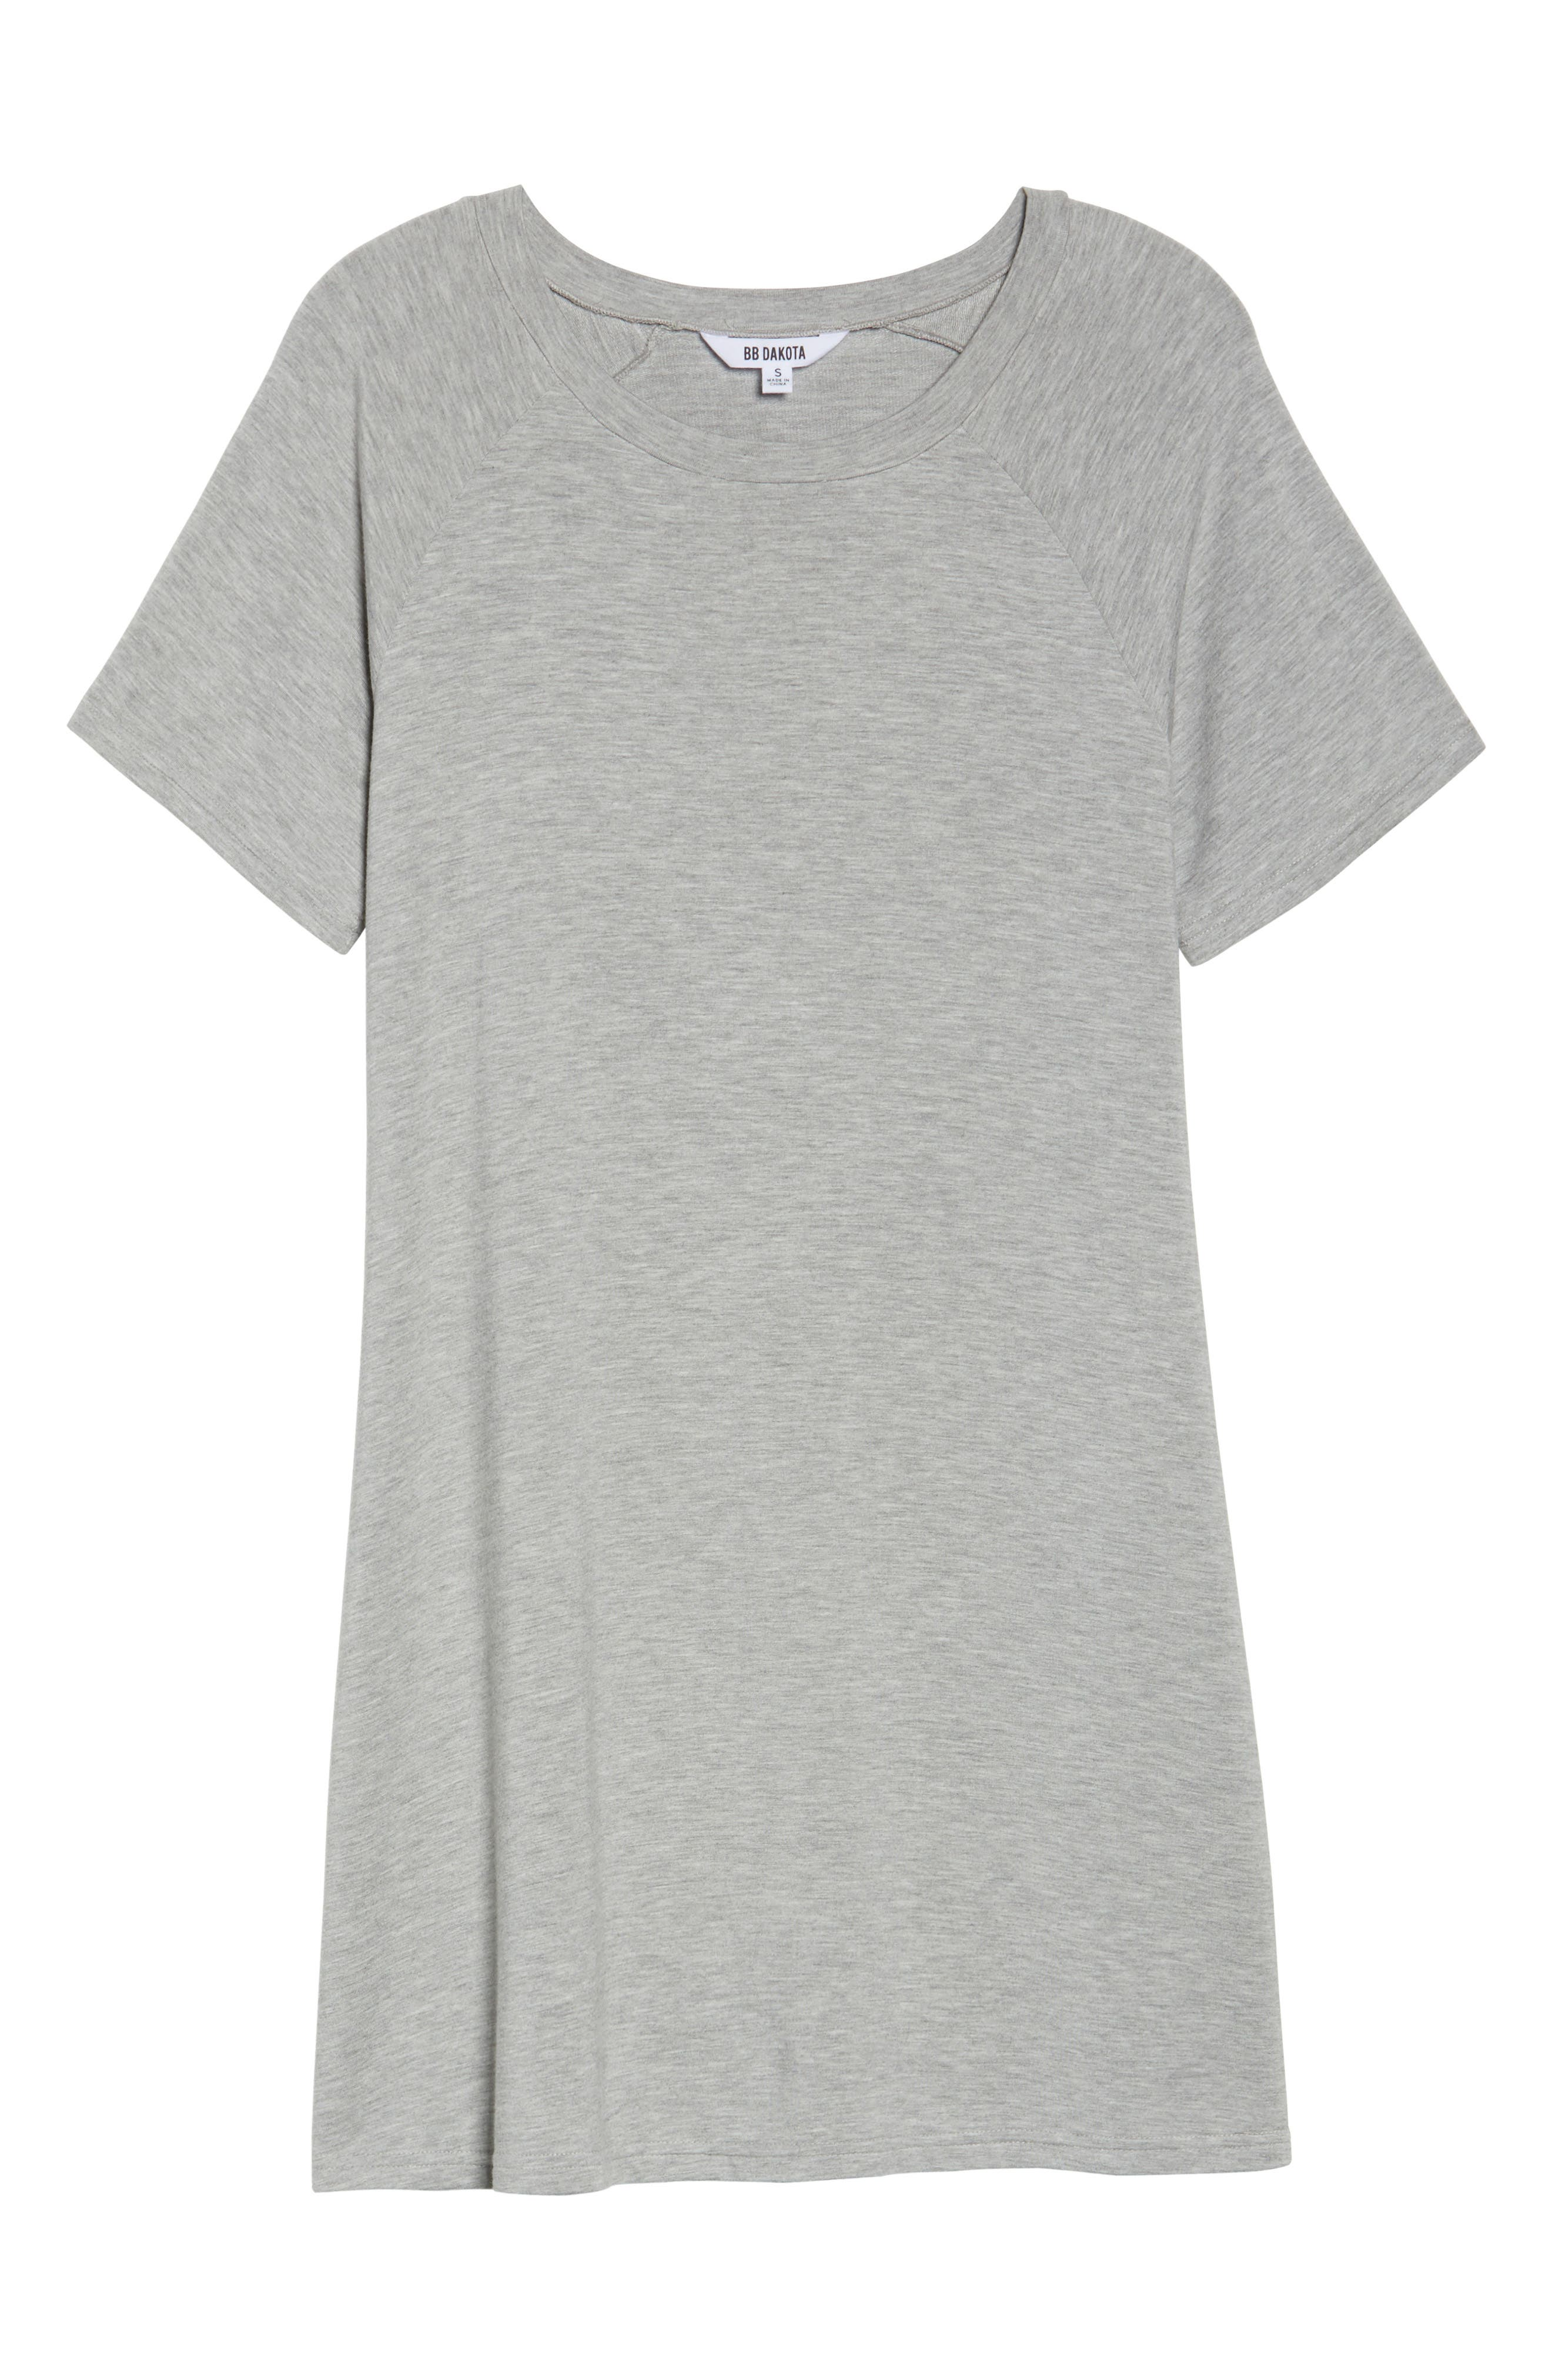 Greer Knit Shift Dress,                             Alternate thumbnail 6, color,                             Light Heather Grey